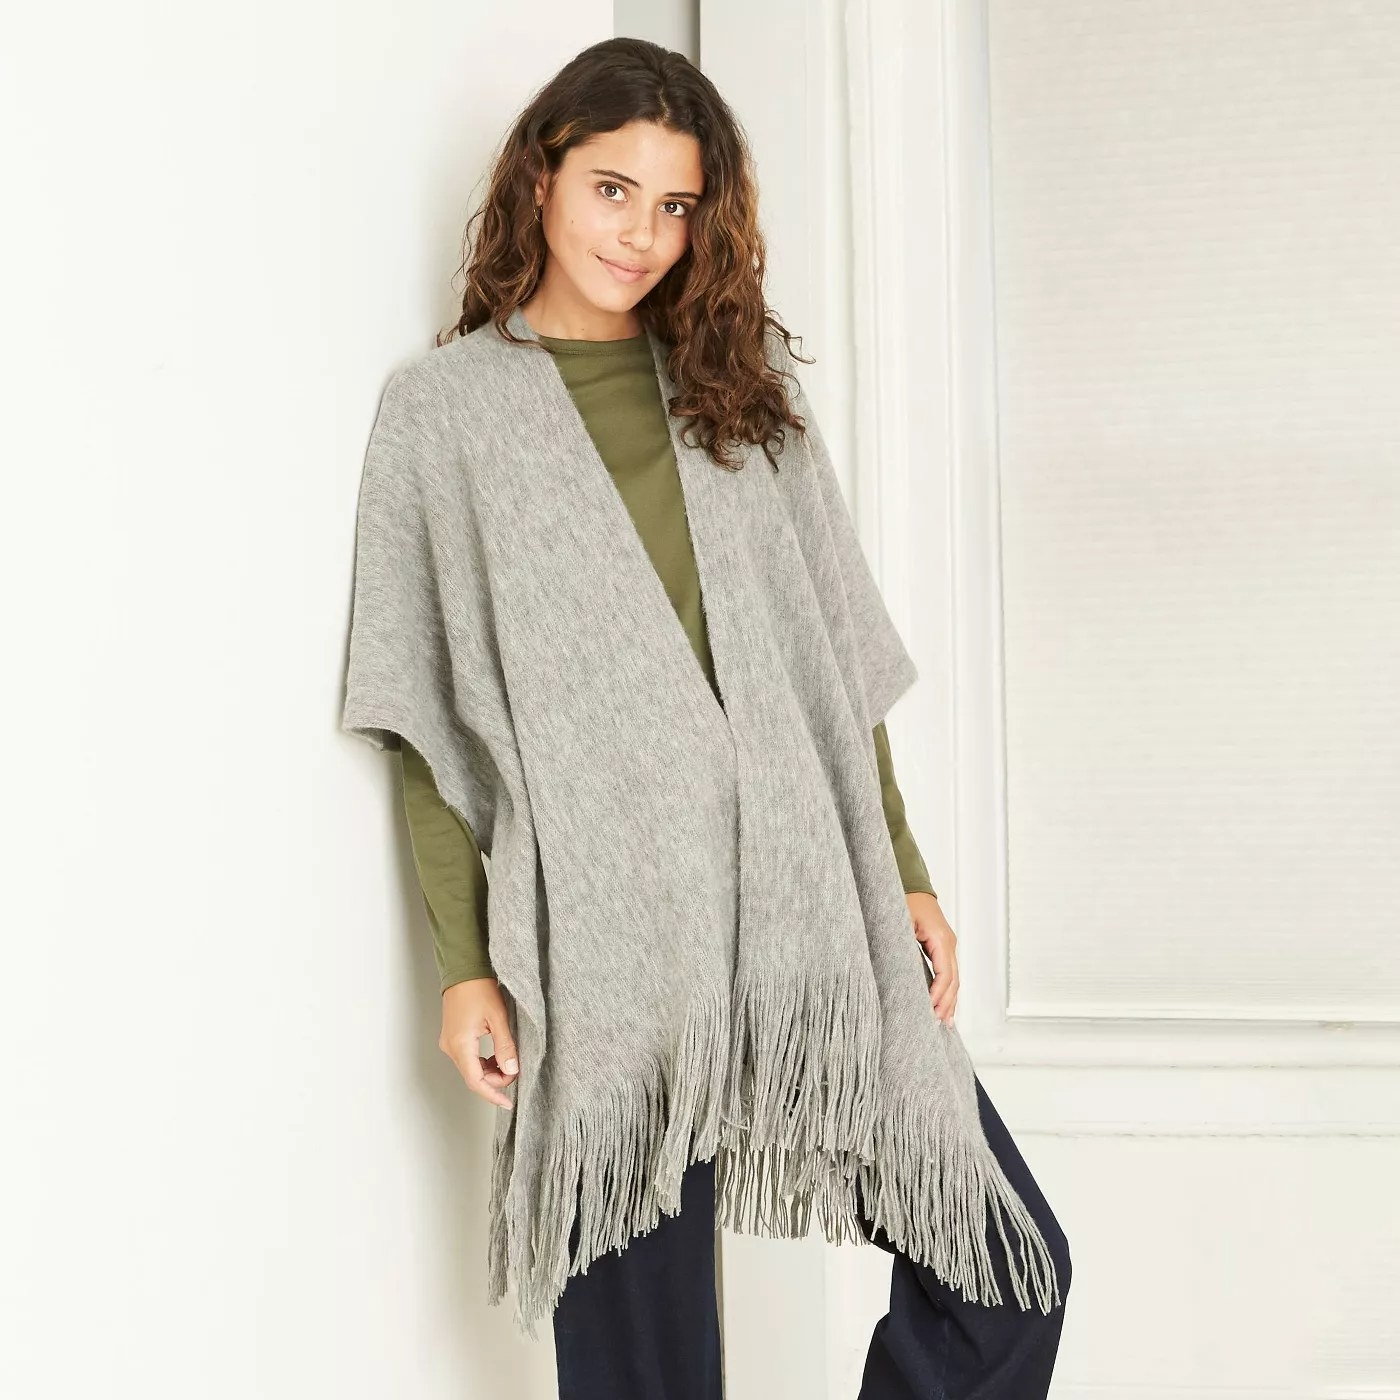 A gray knit poncho with fringe on the bottom.